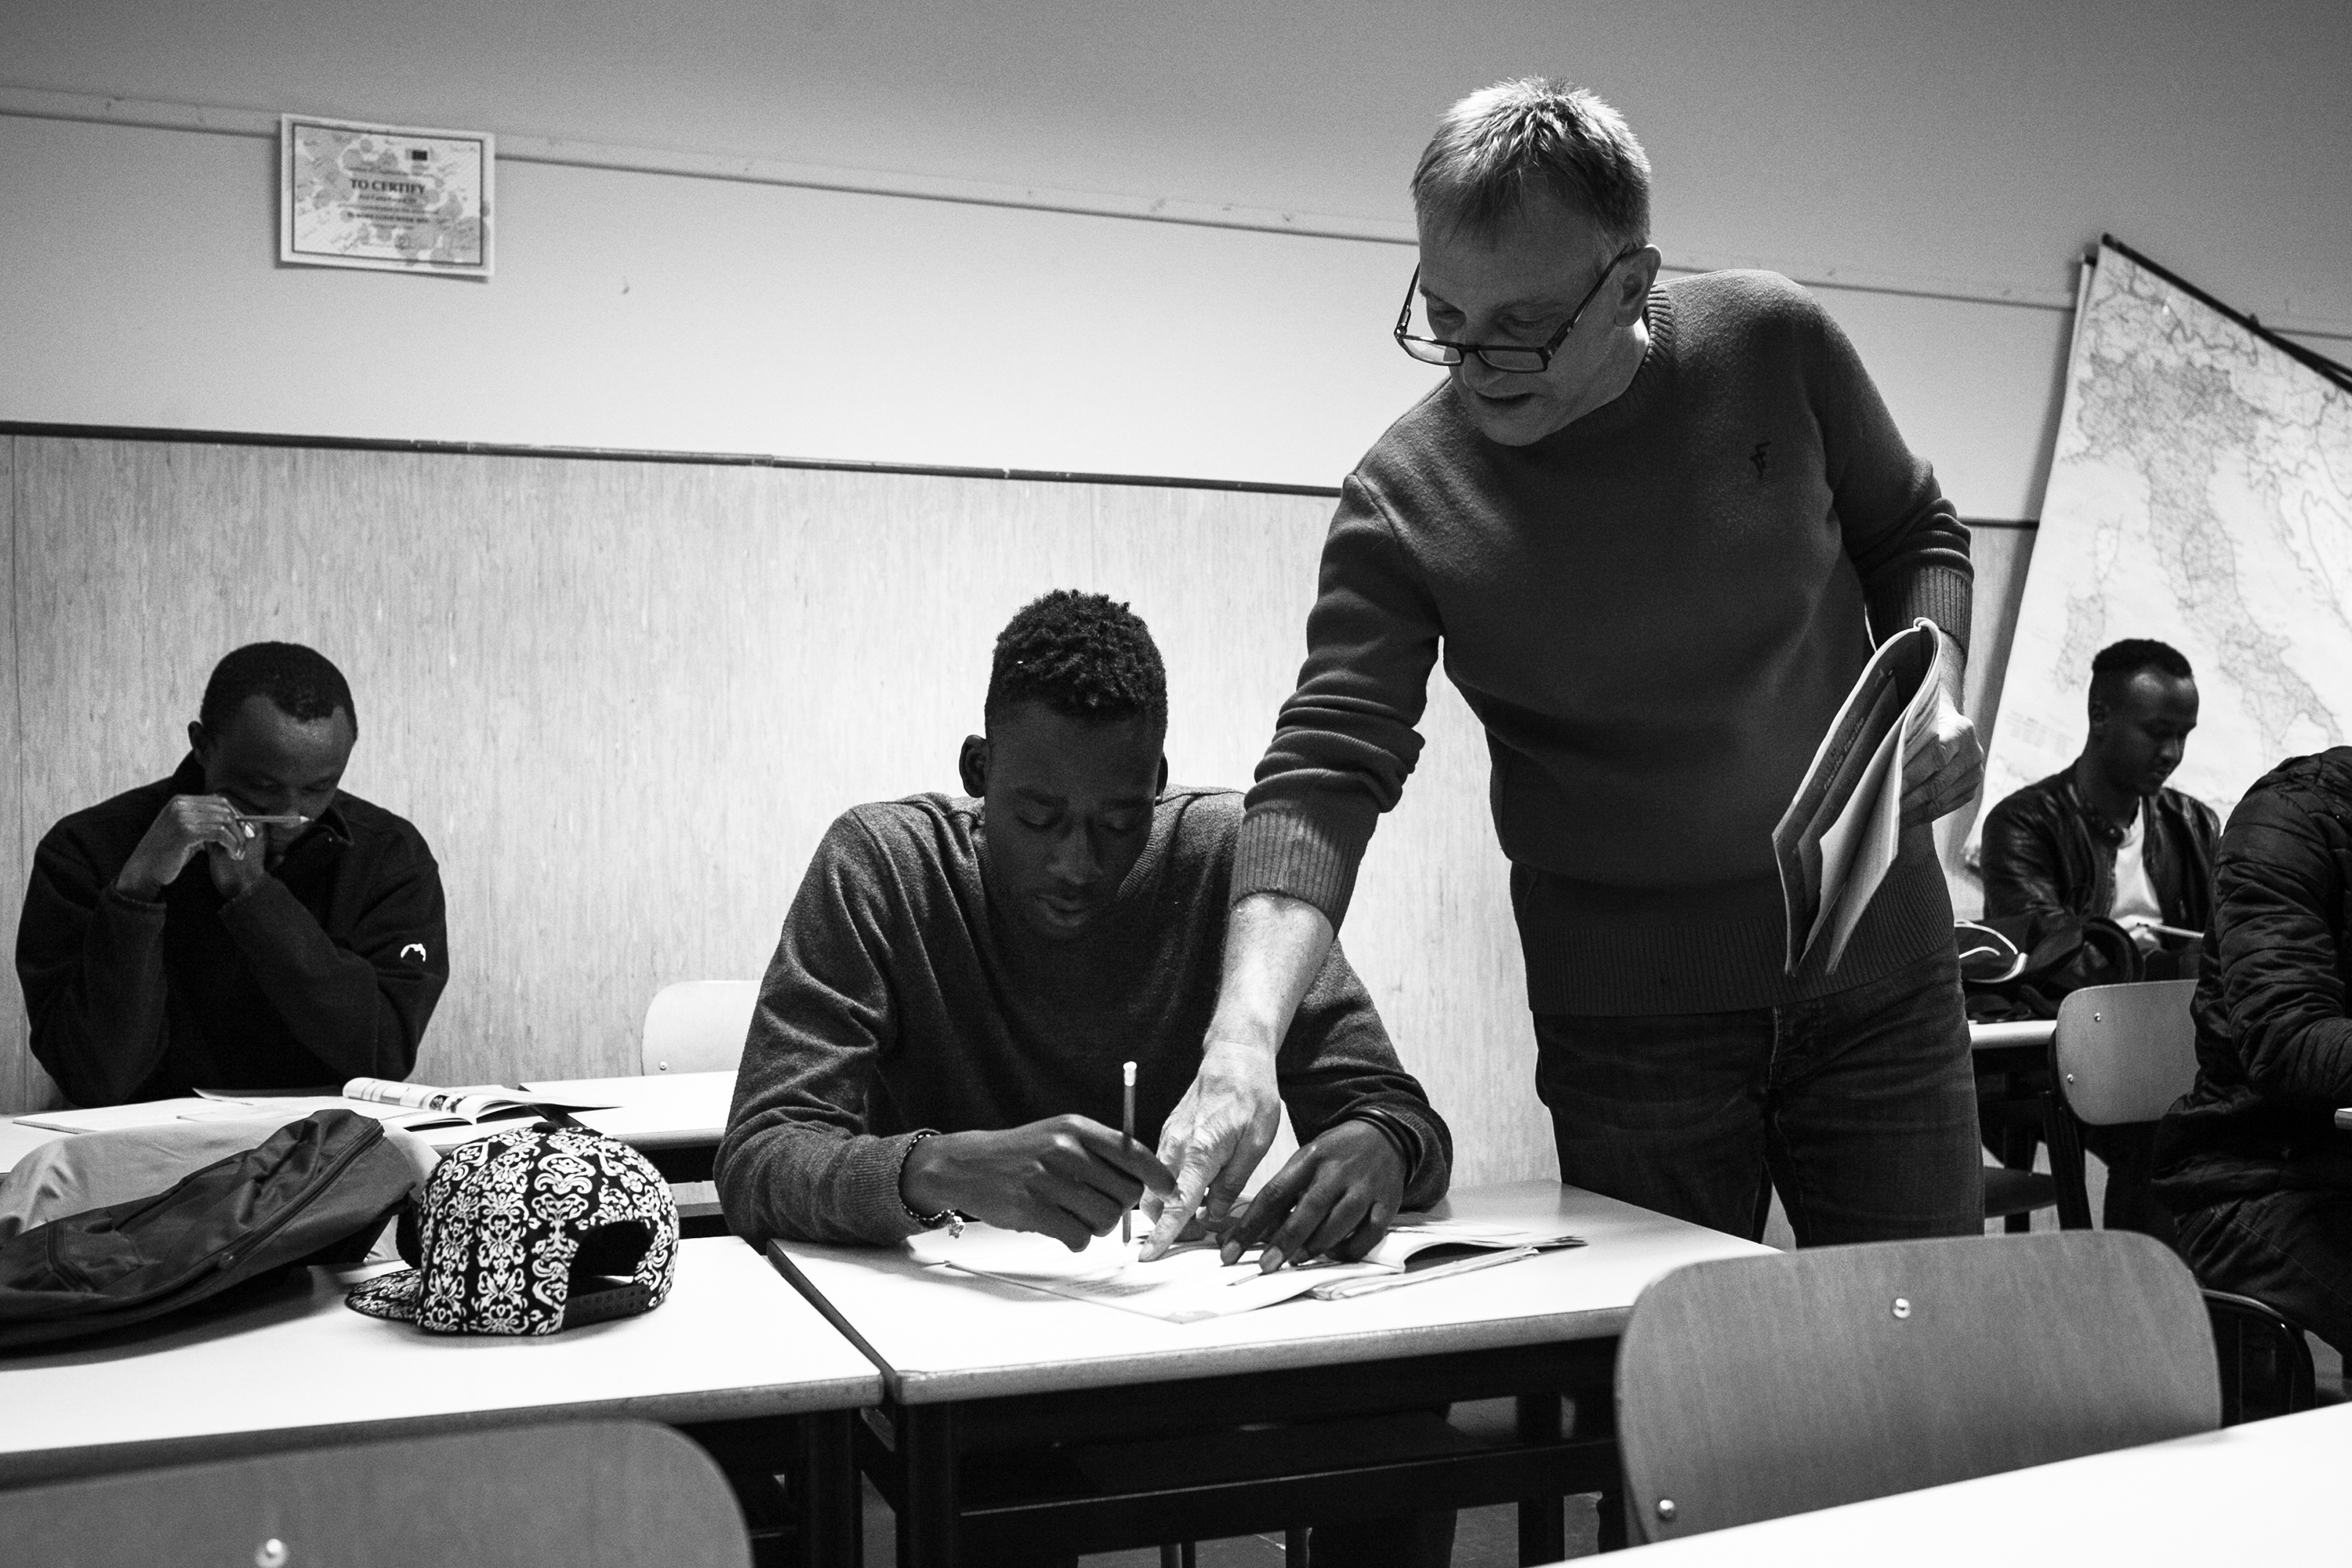 Malick, along with his colleagues from Hotel Colibri as well as from other migrant centers in Biella, attending Italian classes. All migrants receive Italian classes twice a week, in which they learn basic conversational skills to get on in their daily lives, as well as how to prepare their CV. (Photo: César Dezfuli)